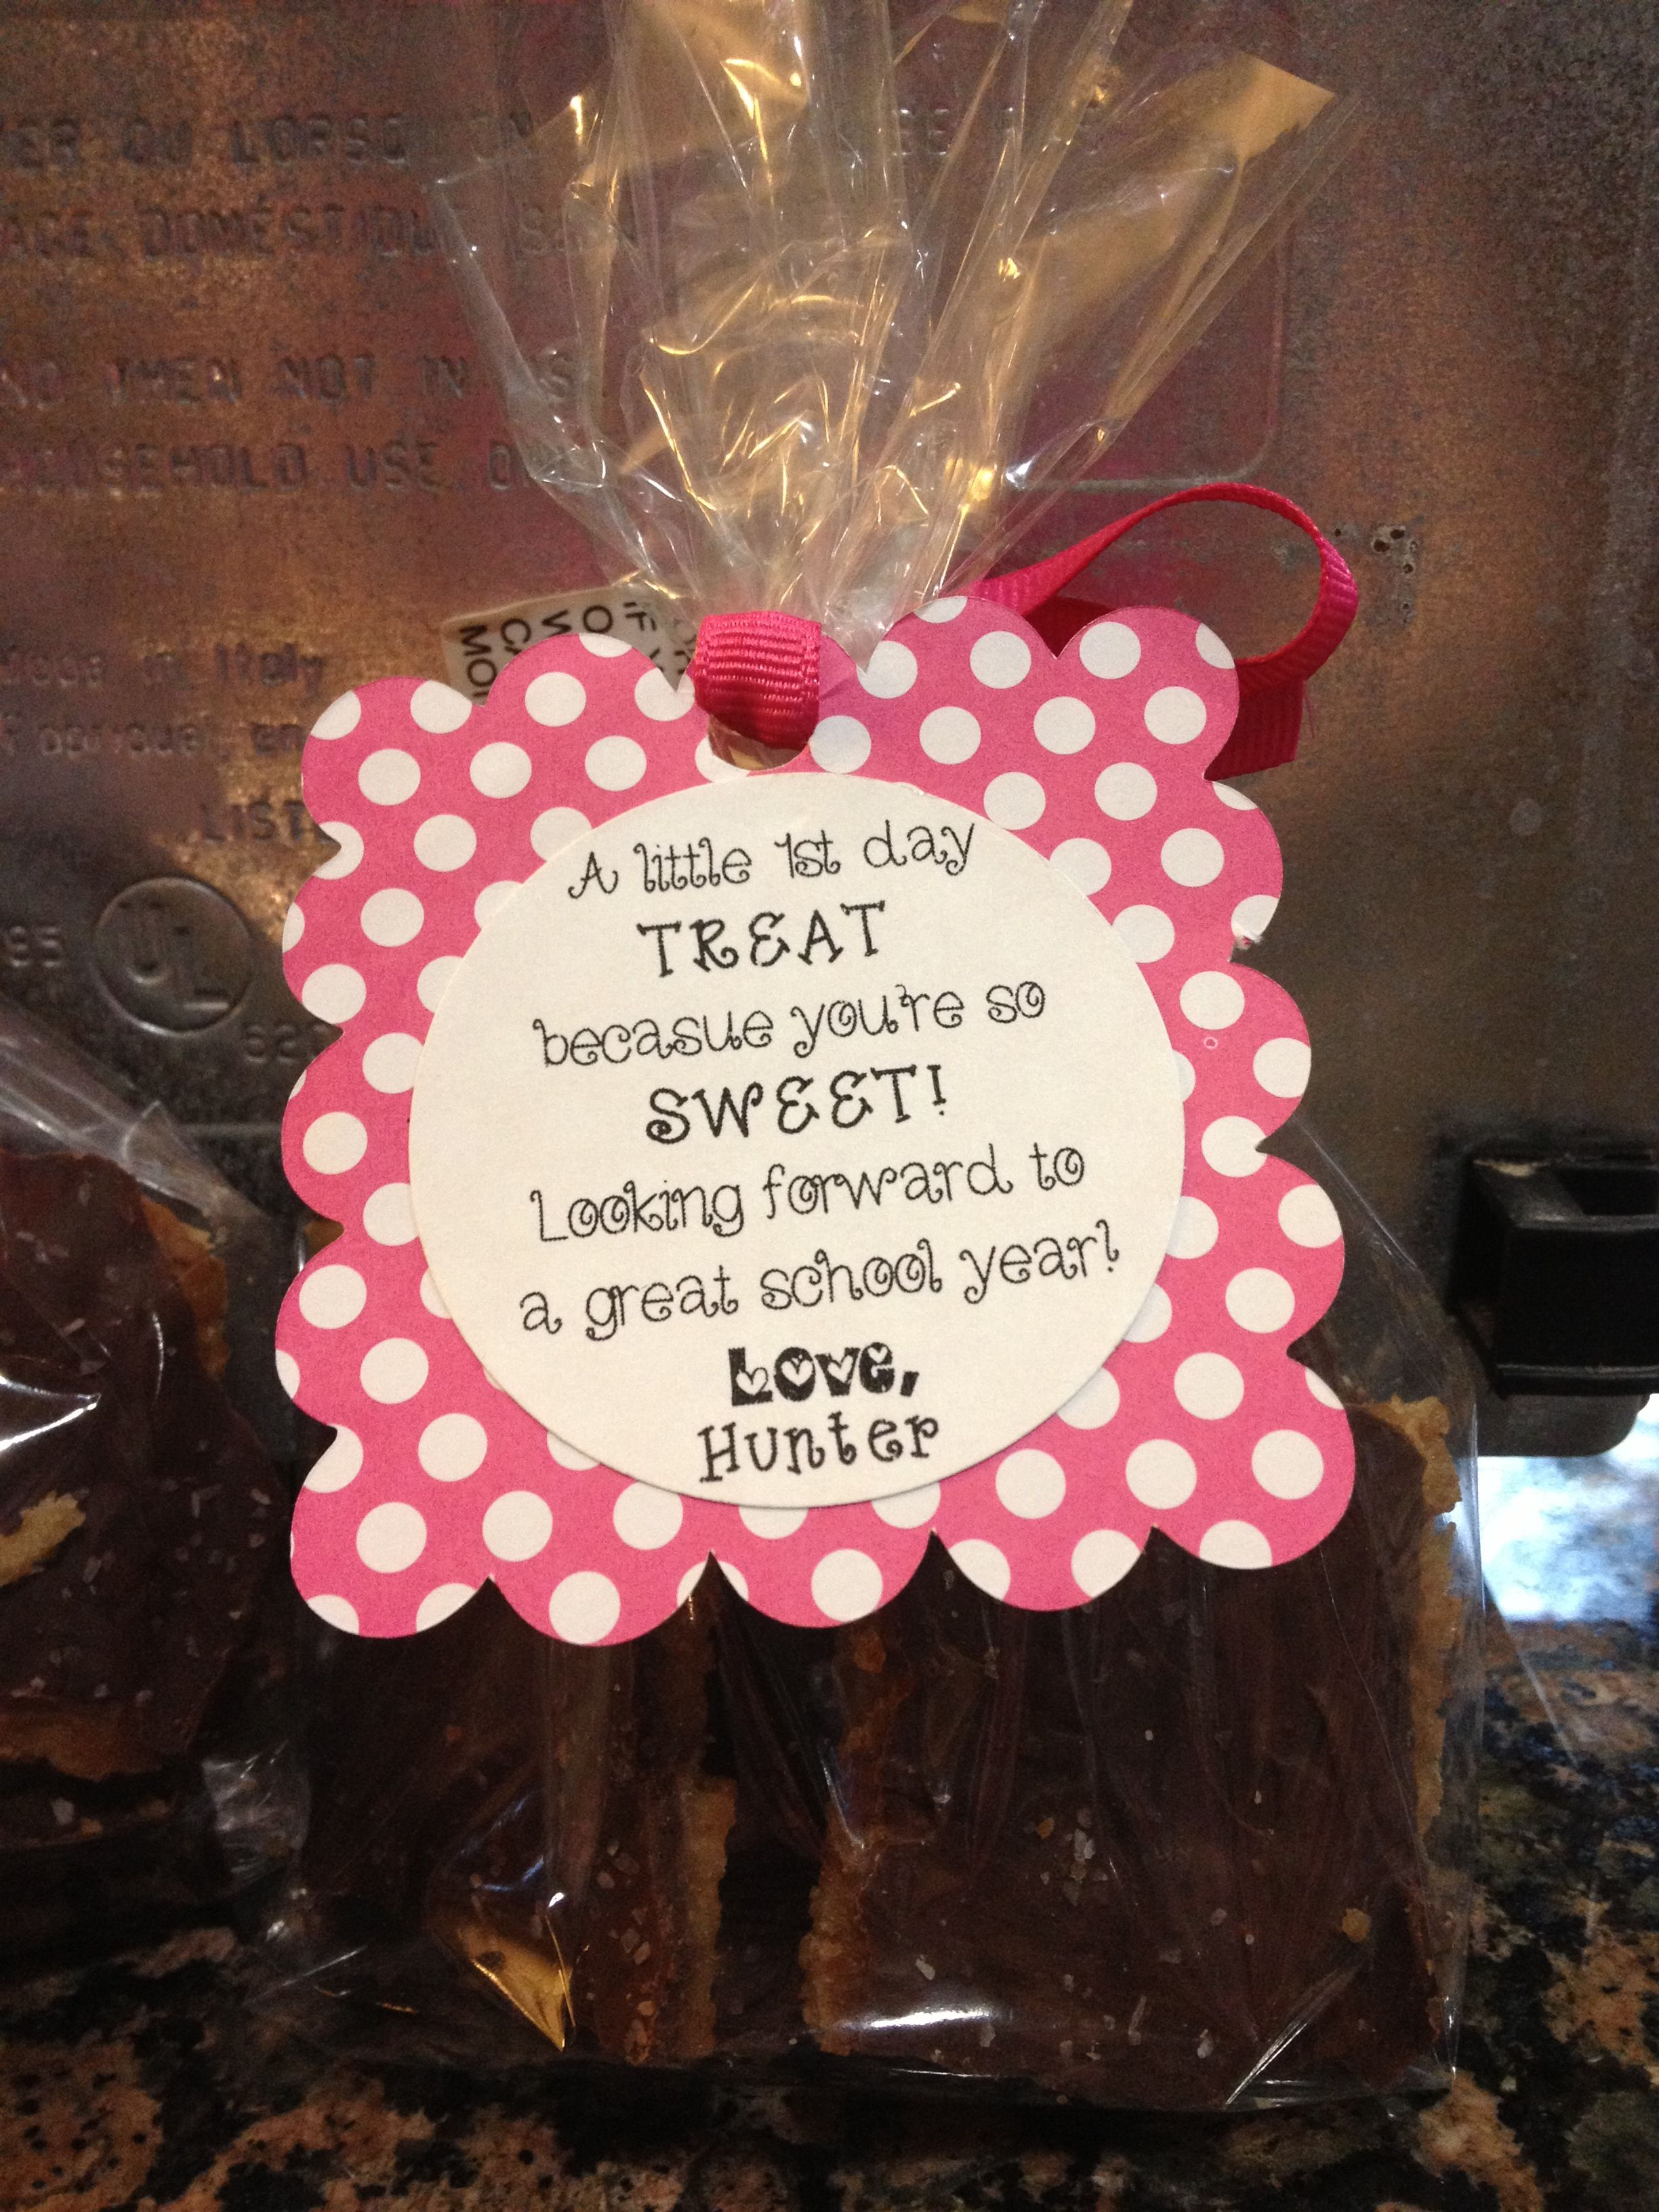 Gifts here\'s a little treat because your so sweet Referral ...